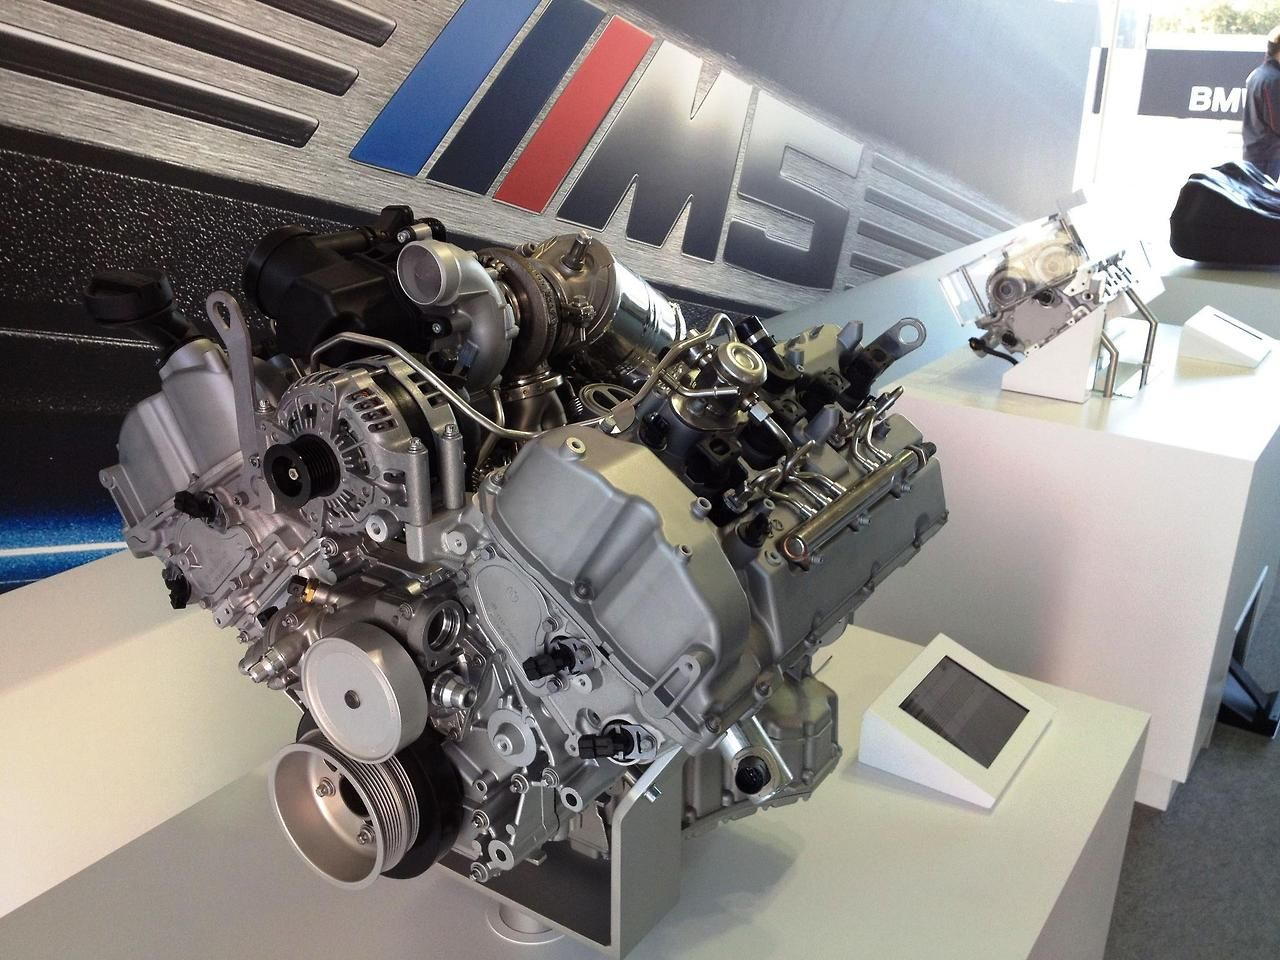 Coupe Series bmw crate engines I. Am. All. Heart. #mylove #f10 #MPower #BMW | Audi sucks ...